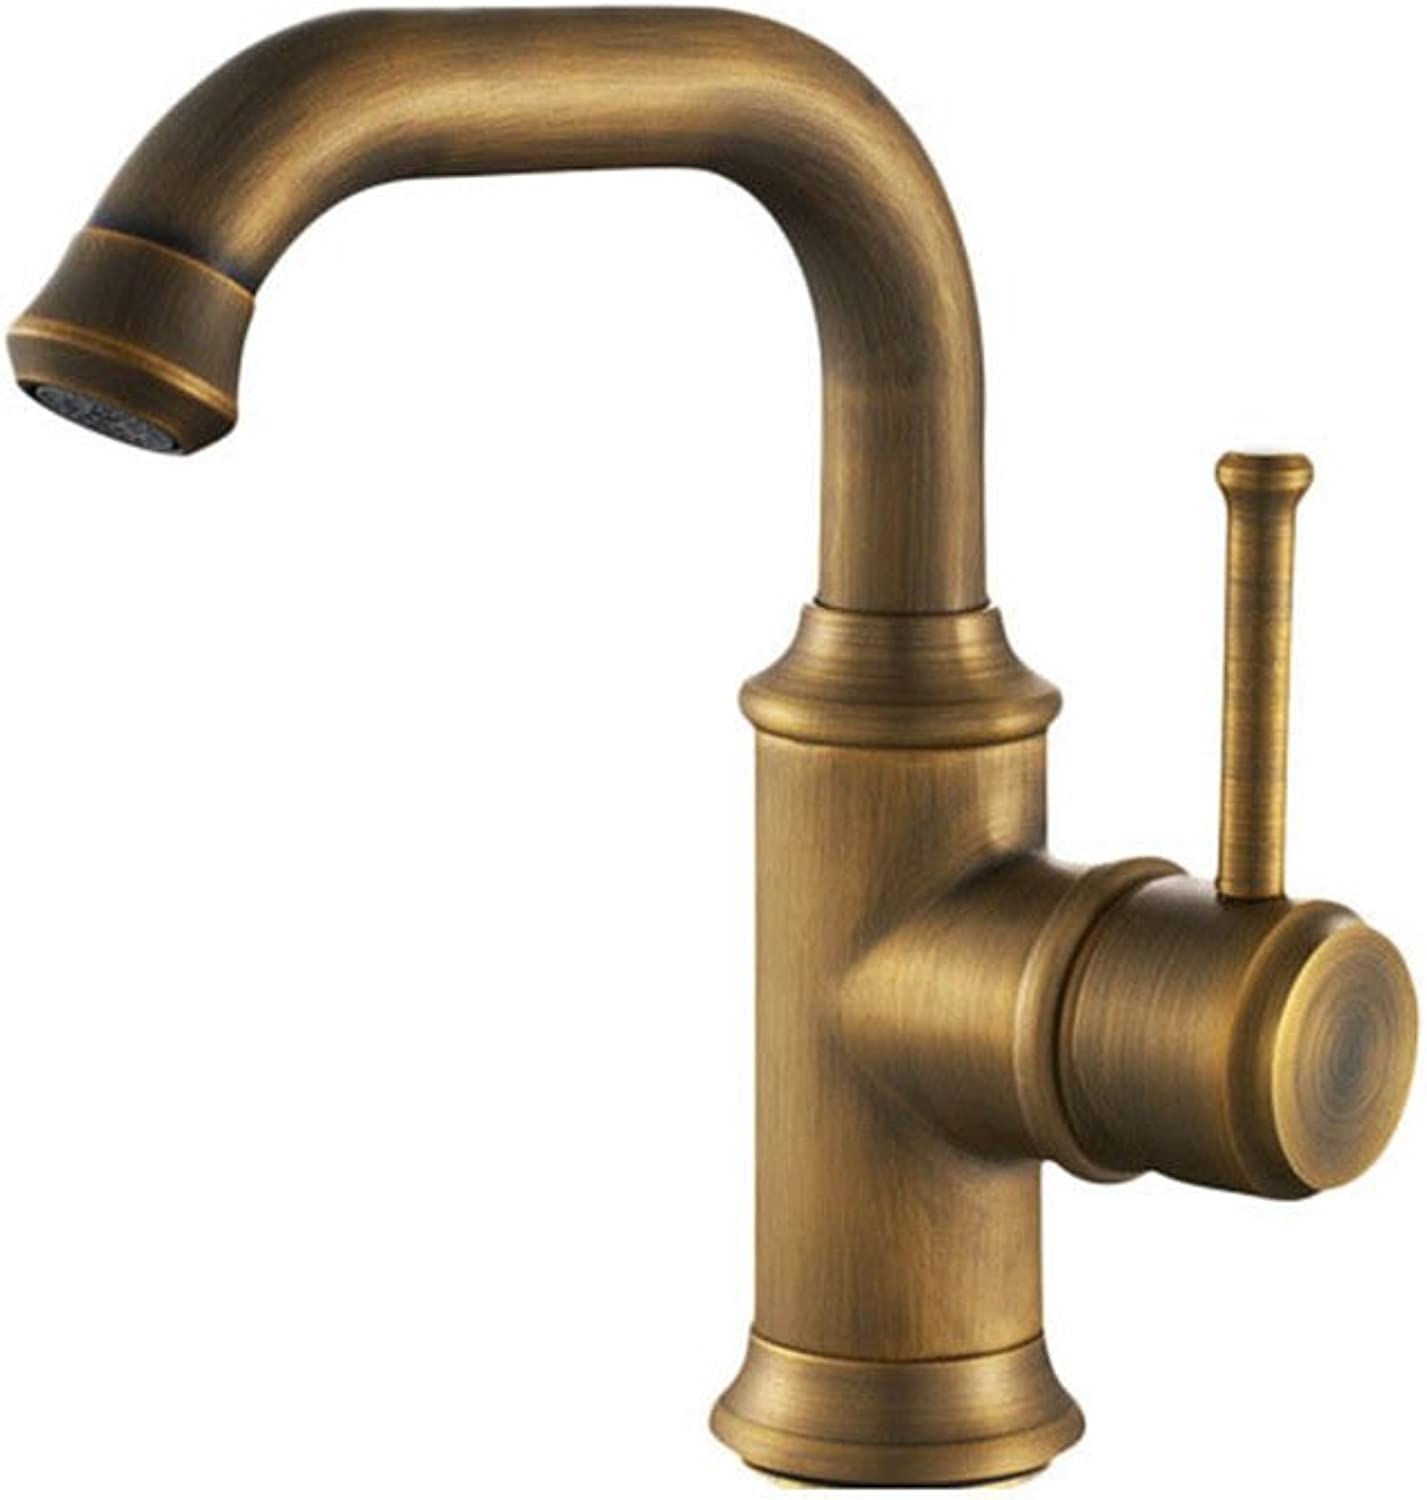 AQMMi Bathroom Sink Faucet Basin Mixer Tap Antique Swivel Brass Hot and Cold Water Single Lever Single Hole Basin Sink Tap Bathroom Bar Faucet